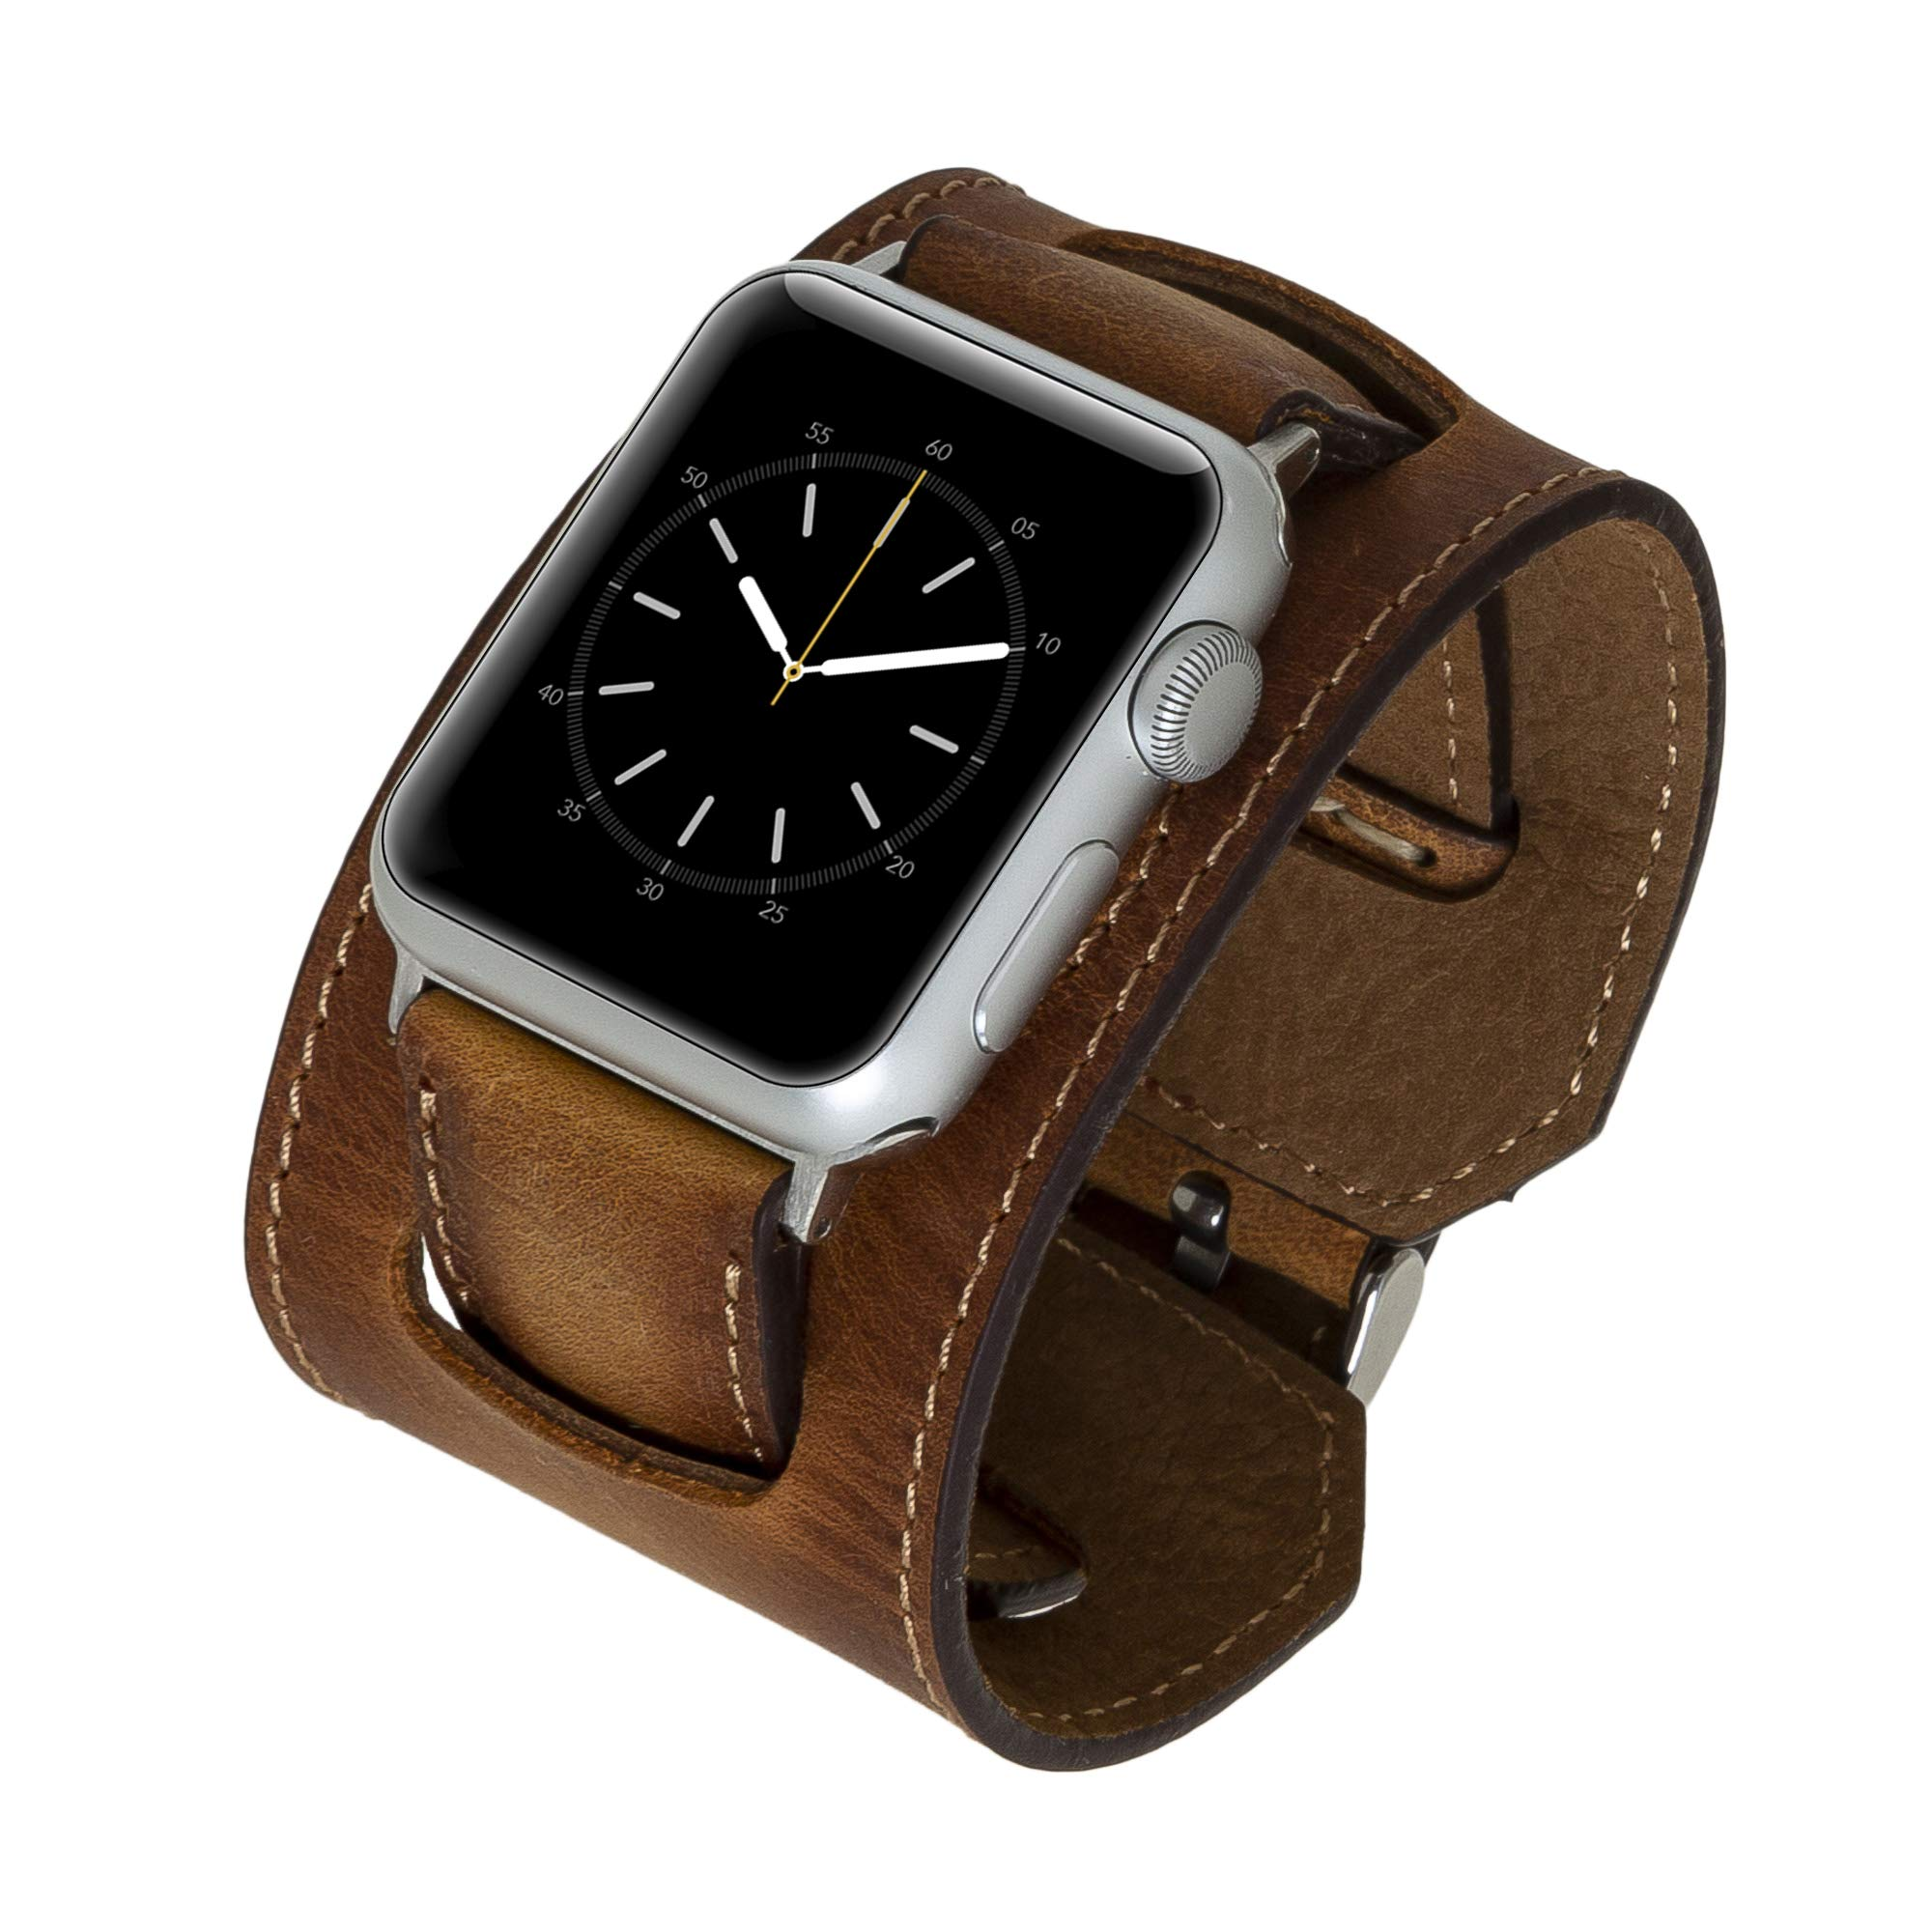 Venito Ancona Cuff Premium Leather Watch Band Strap Compatible w/Apple Watch iwatch 44/42/40/38mm,Series1,2,3,4 w/Stainless Steel Hardware (Antique Brown w/Silver Connector&Clasp, 42mm-44mm) by Venito